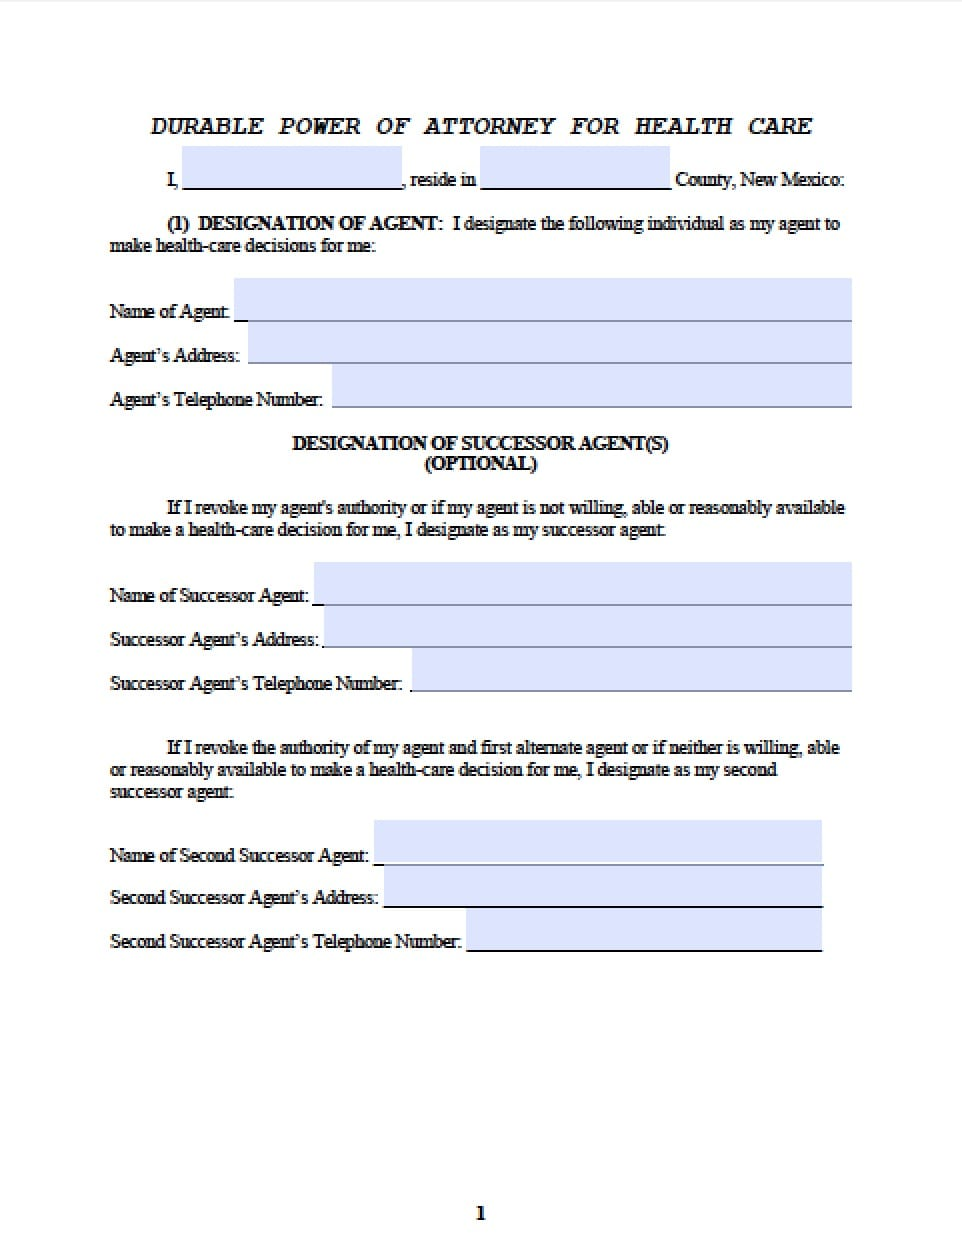 New Mexico Medical Power of Attorney Form Power of Attorney – Medical Power of Attorney Form